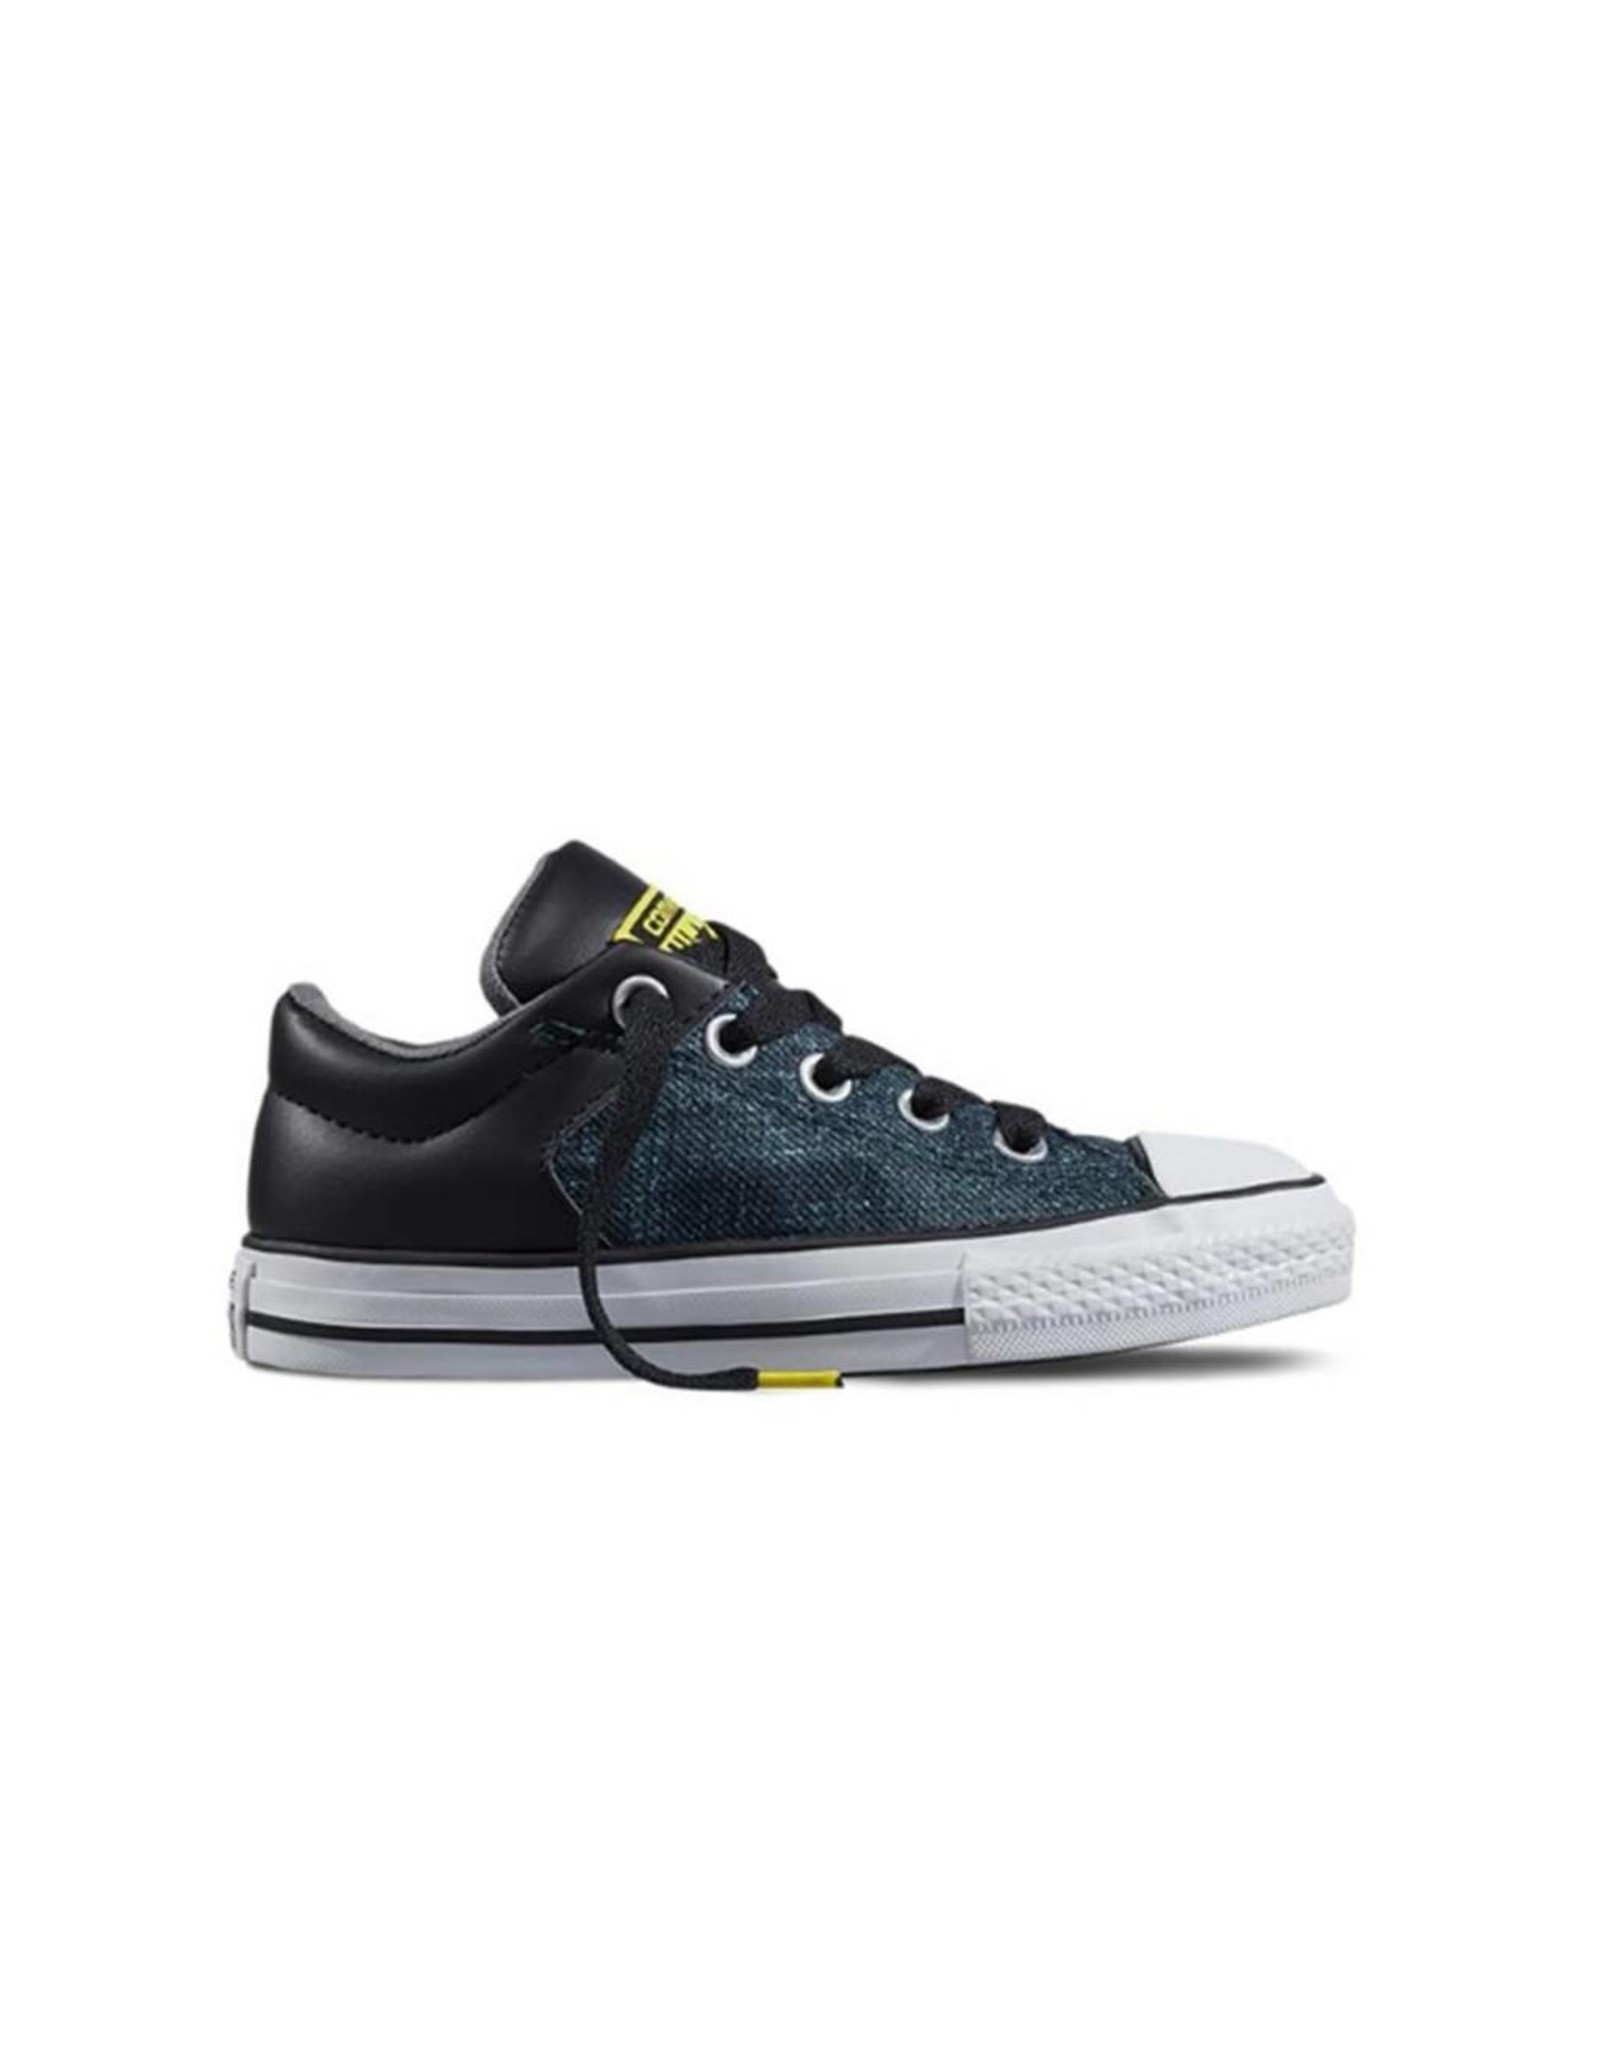 CONVERSE CHUCK TAYLOR ALL STAR HIGH STREET SLIP BLACK YELLOW CVHSBW-651784C